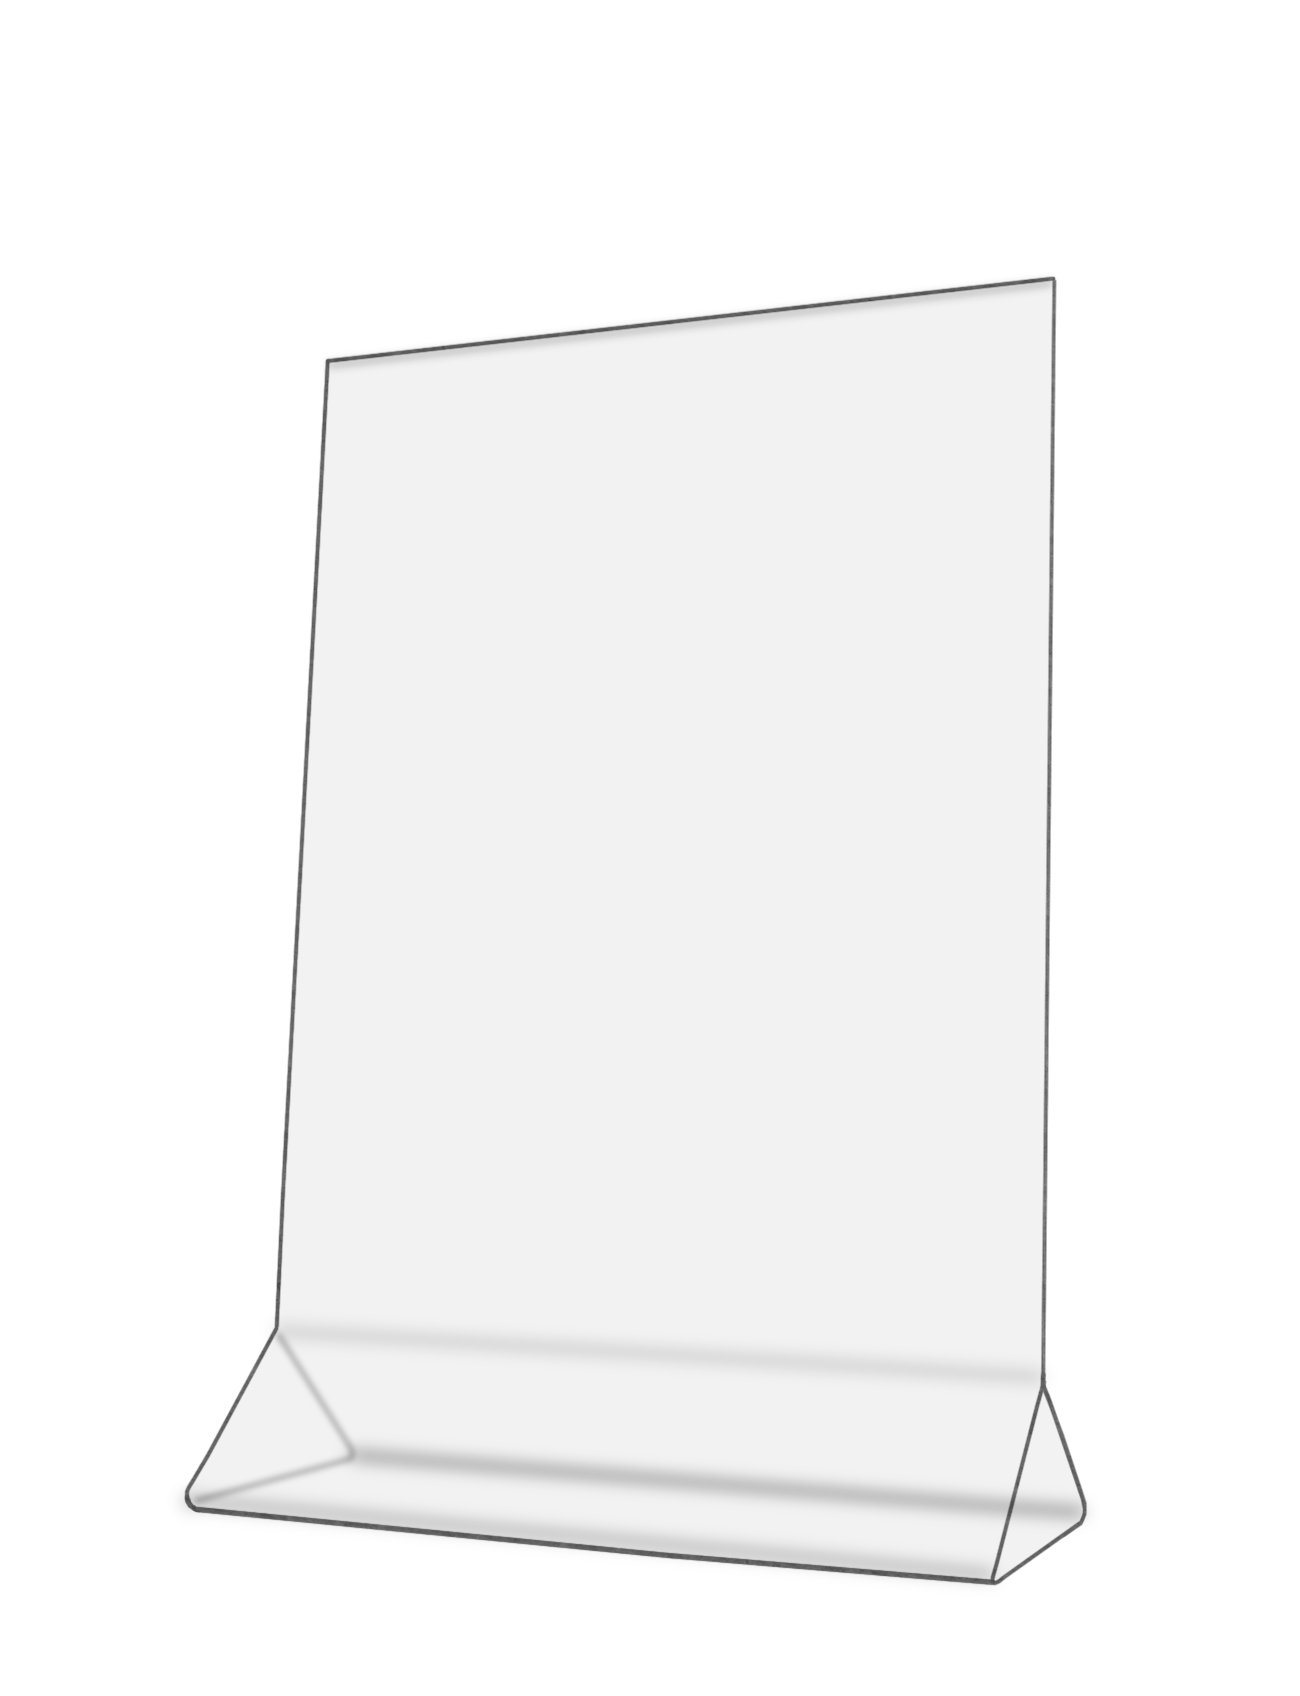 Displays Sign Holder 3 Pack Durable Clear Thick Acrylic Menu & Brochure Stand Double Sided & Top Loading Ad Frame For Restaurants Office Tabletop Leaflets 9''w x 12''h